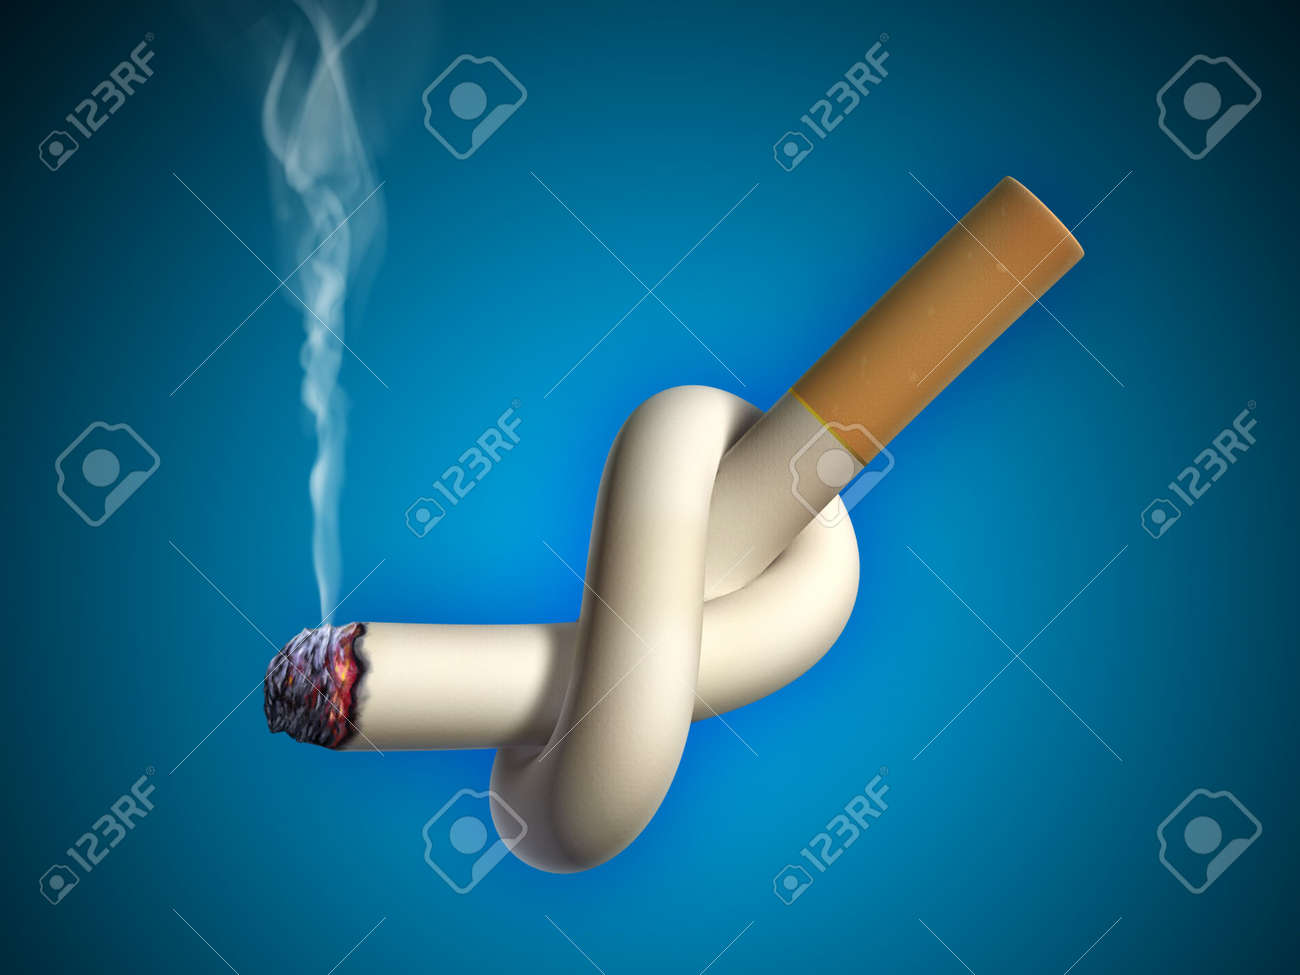 Cigarette tied in a knot. Digital illustration. Stock Photo - 6894044